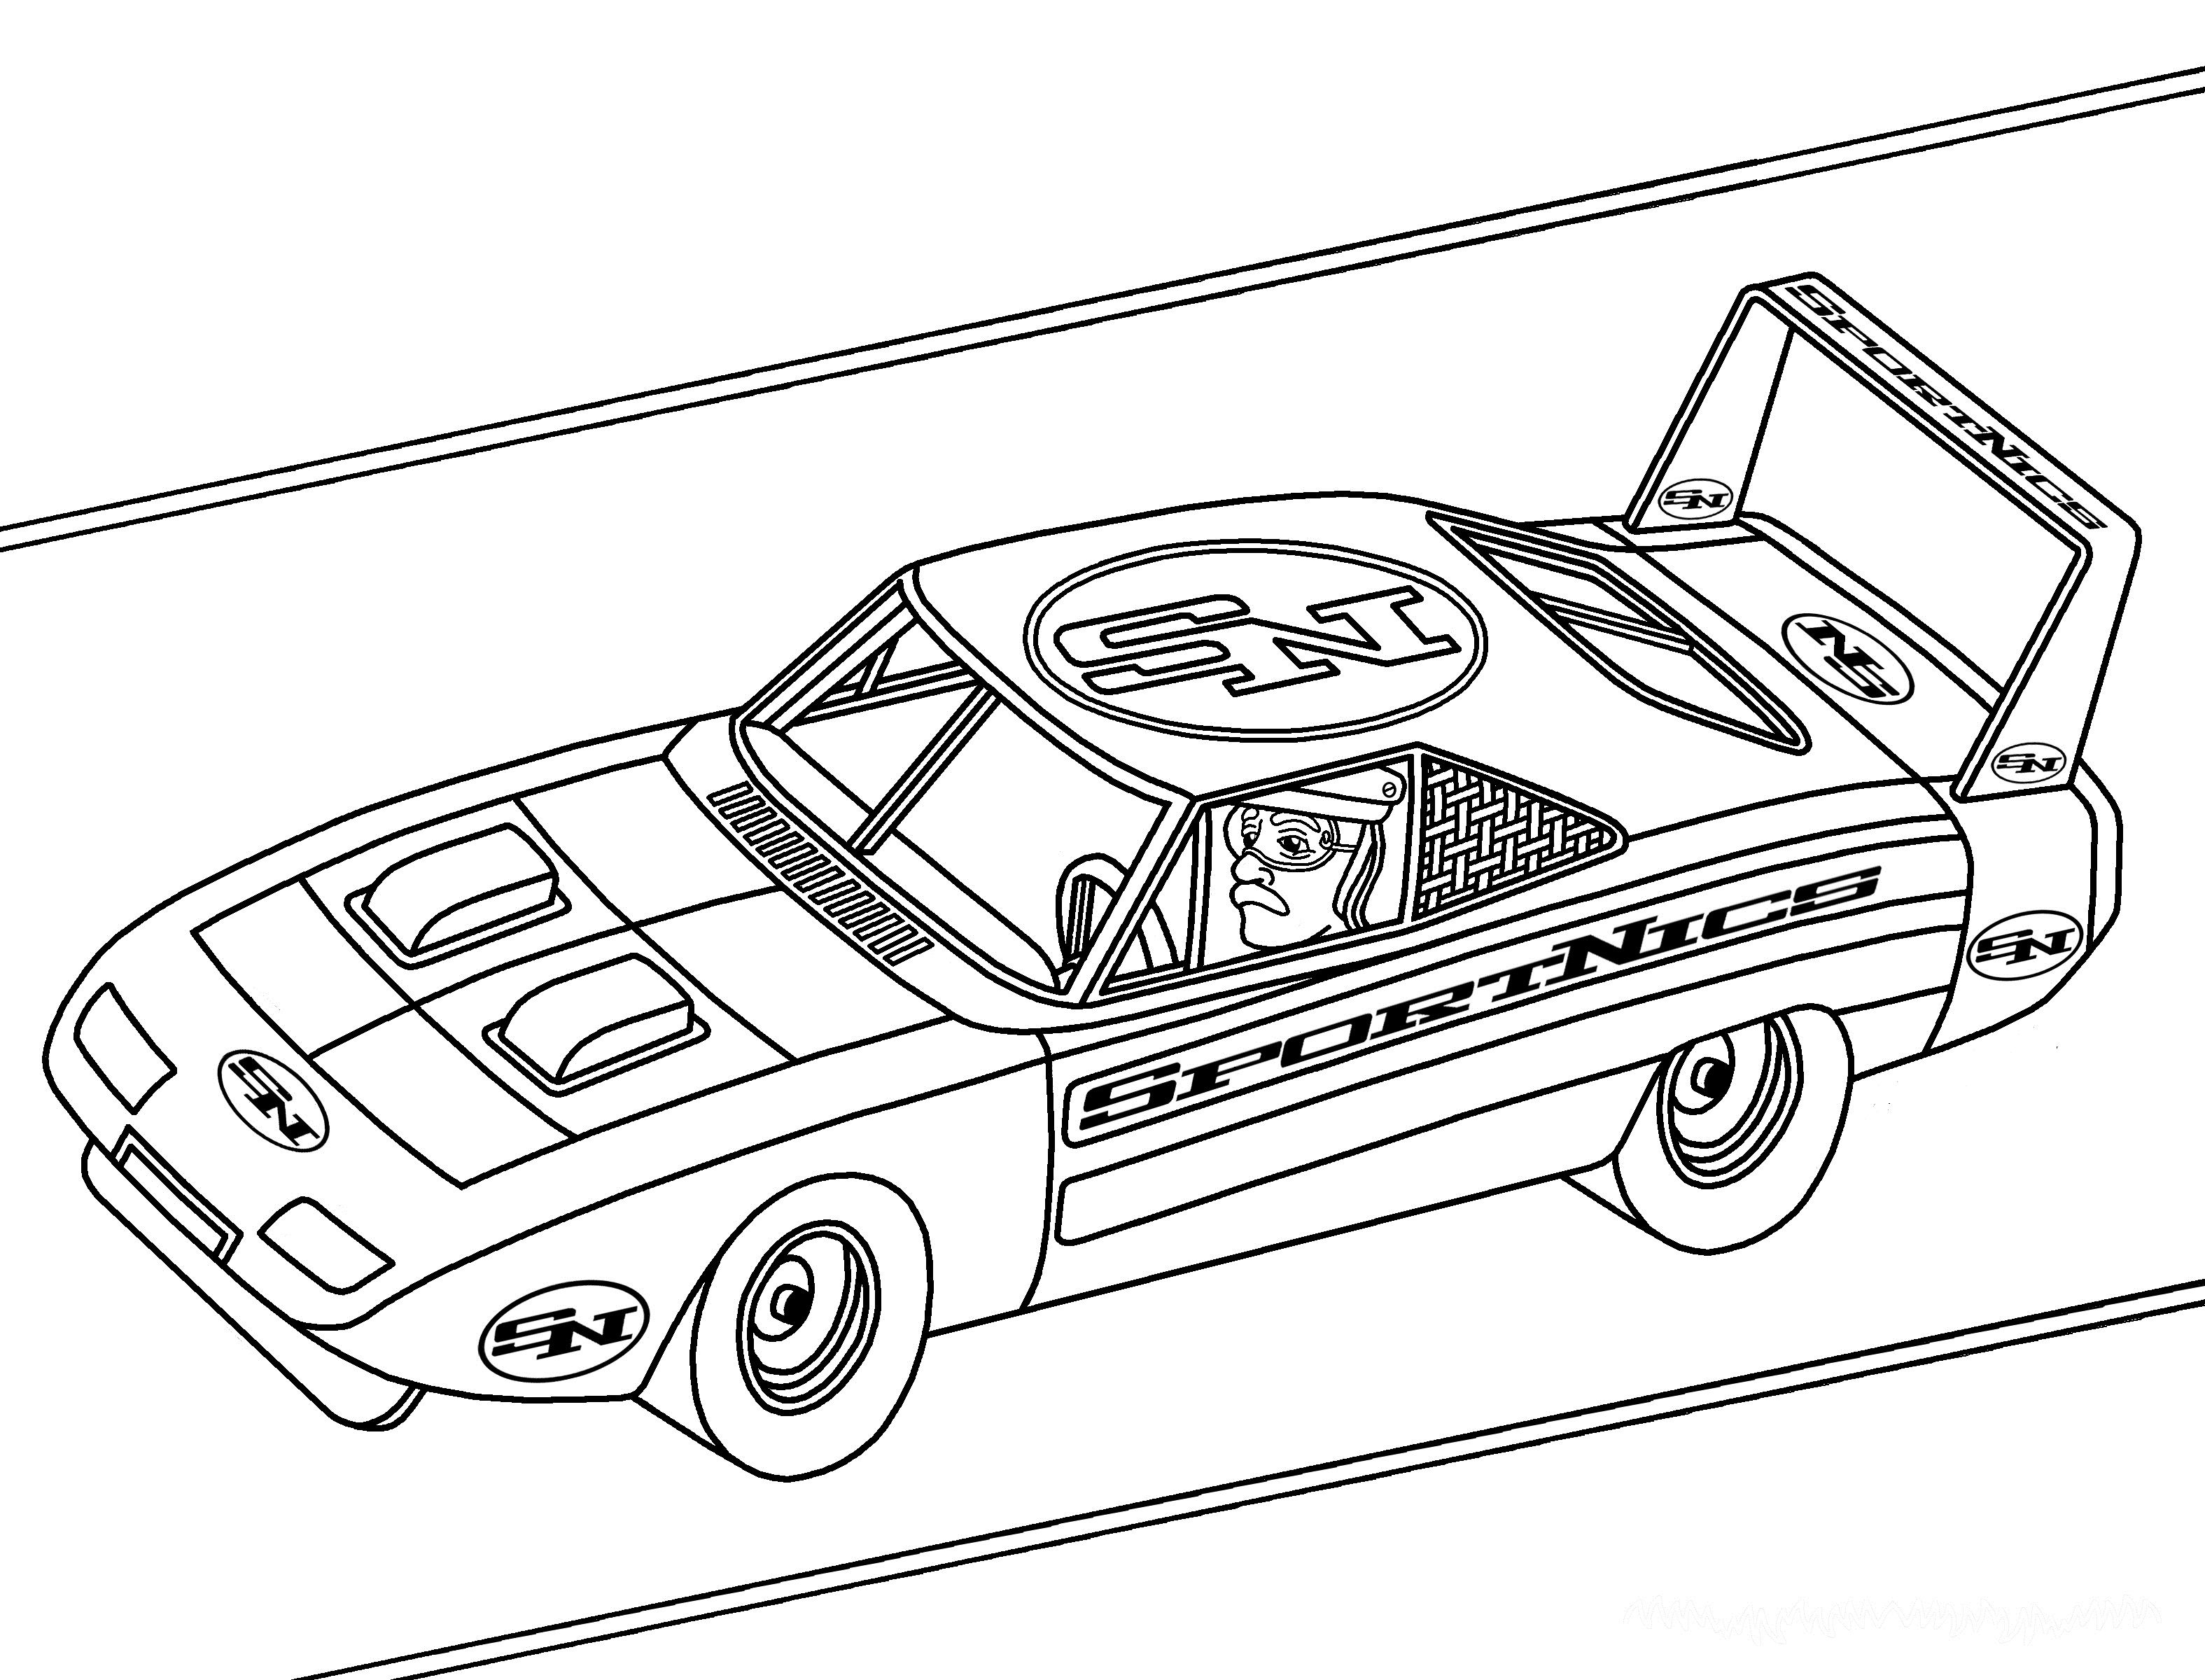 Printable NASCAR coloring pages | Cars coloring pages ...